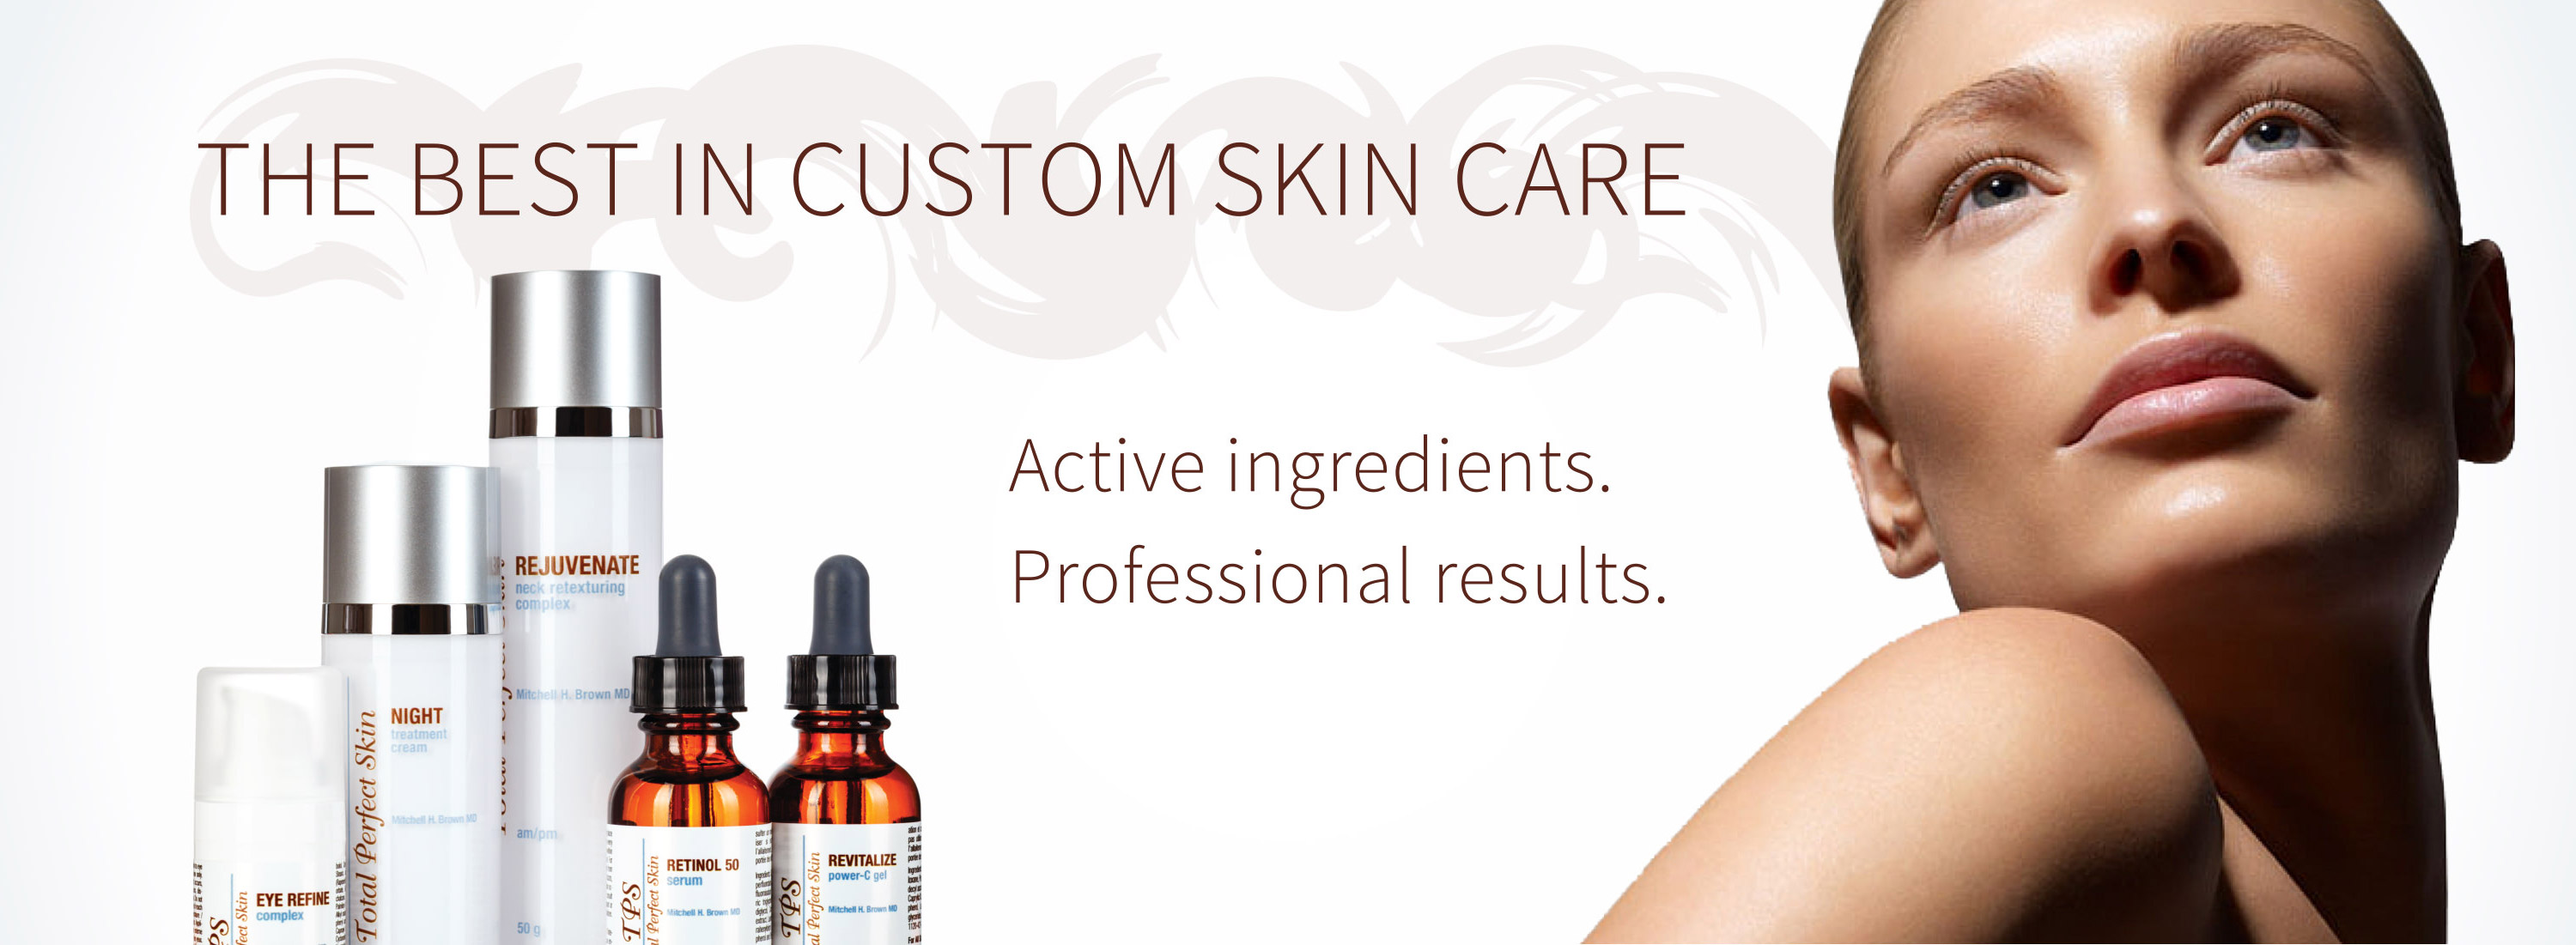 TPS Custom Skincare Shop